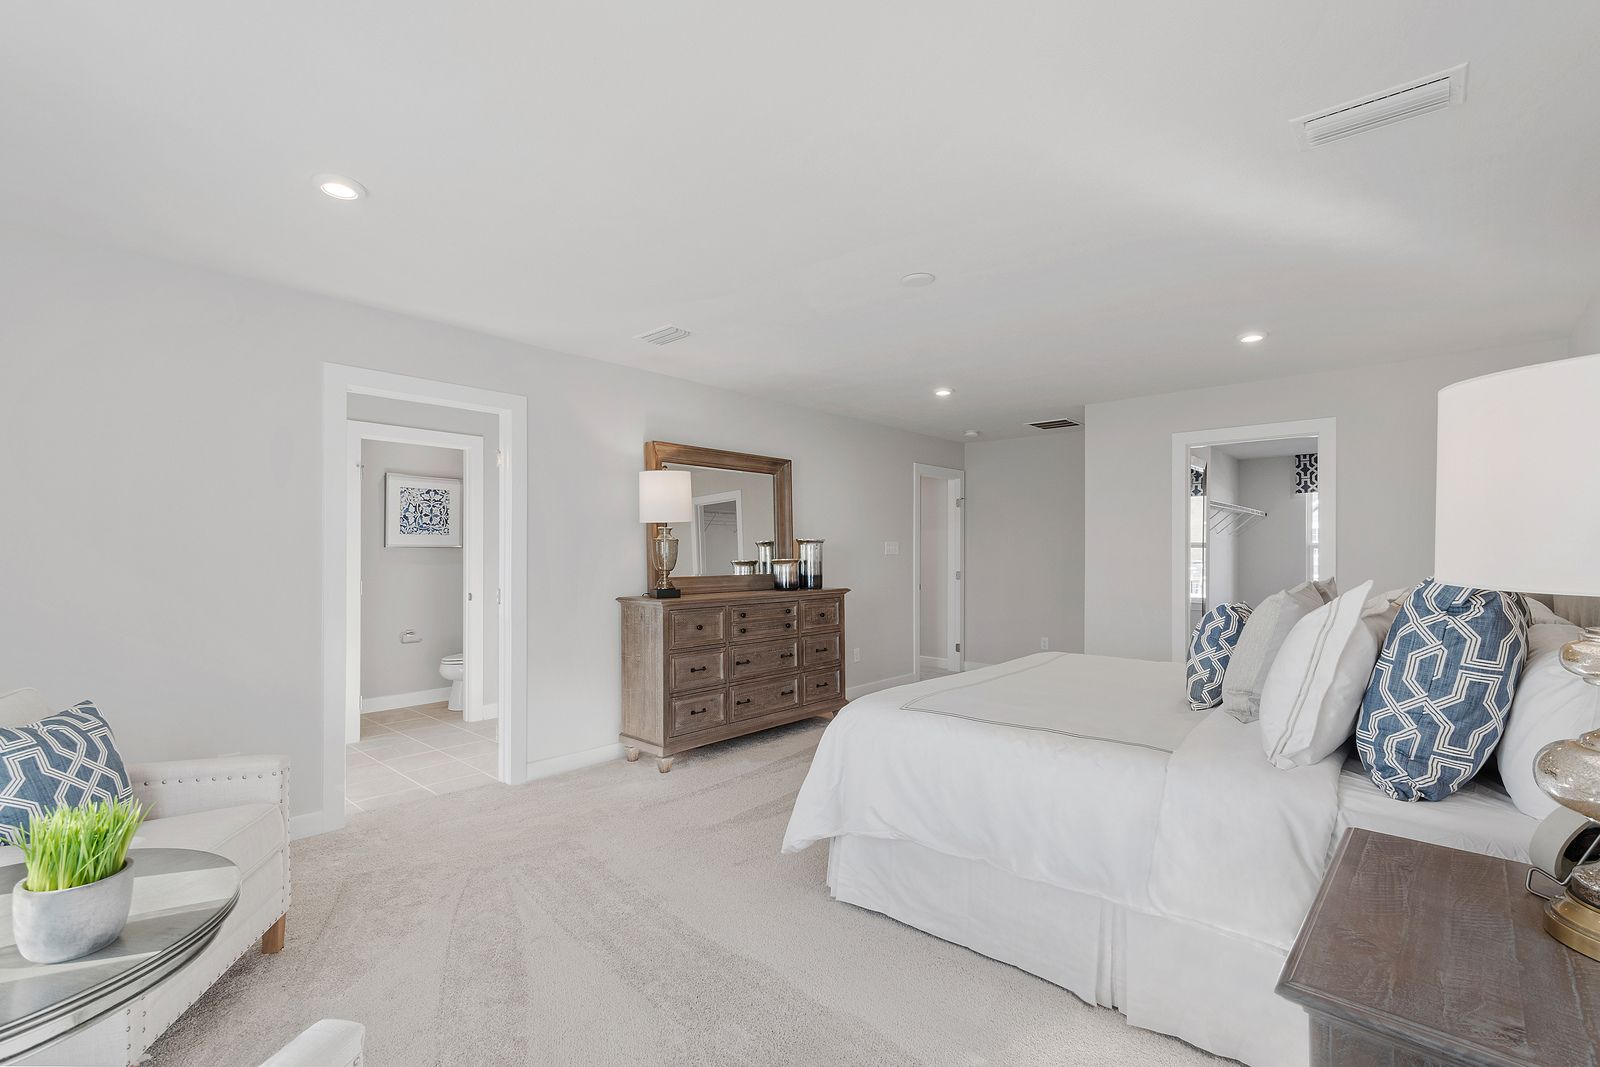 Bedroom featured in the Columbia w/ Optional Finished Basement By Ryan Homes in Chicago, IL